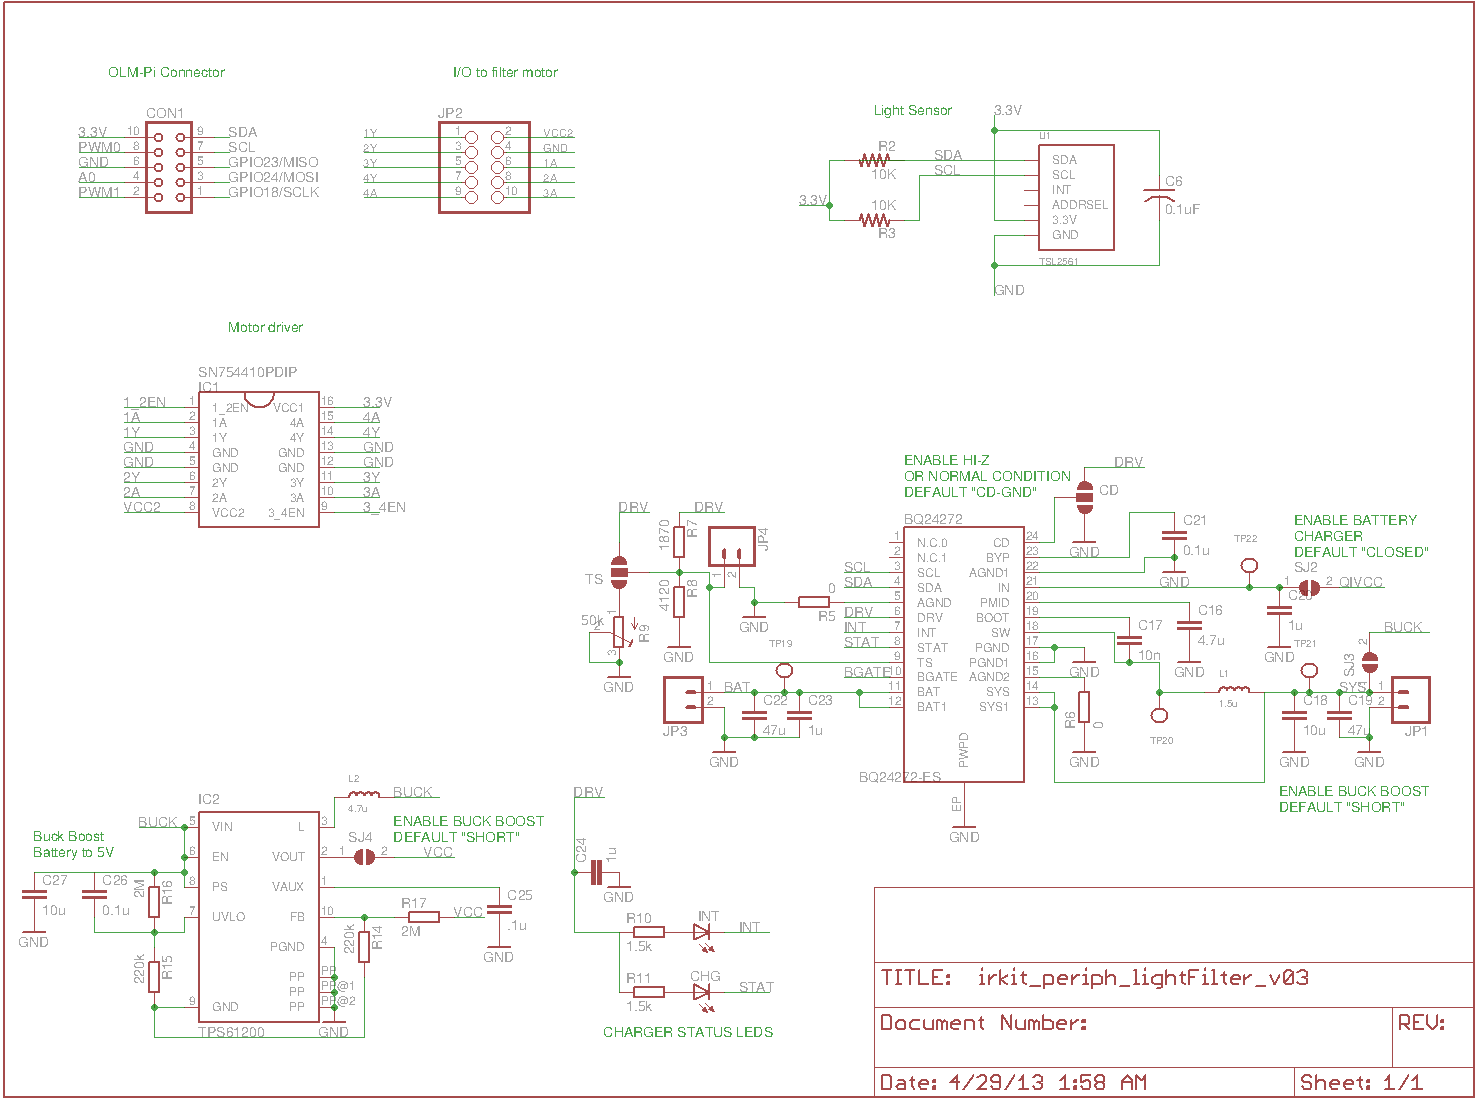 Ircam Raspberry Pi Shield First Steps additionally Flandwatypid as well Blog bobina Tesla also ELECTRIC SUZUKI SAMURAI Br Conversion Pictures p 109 further Dimension. on wiring schematics